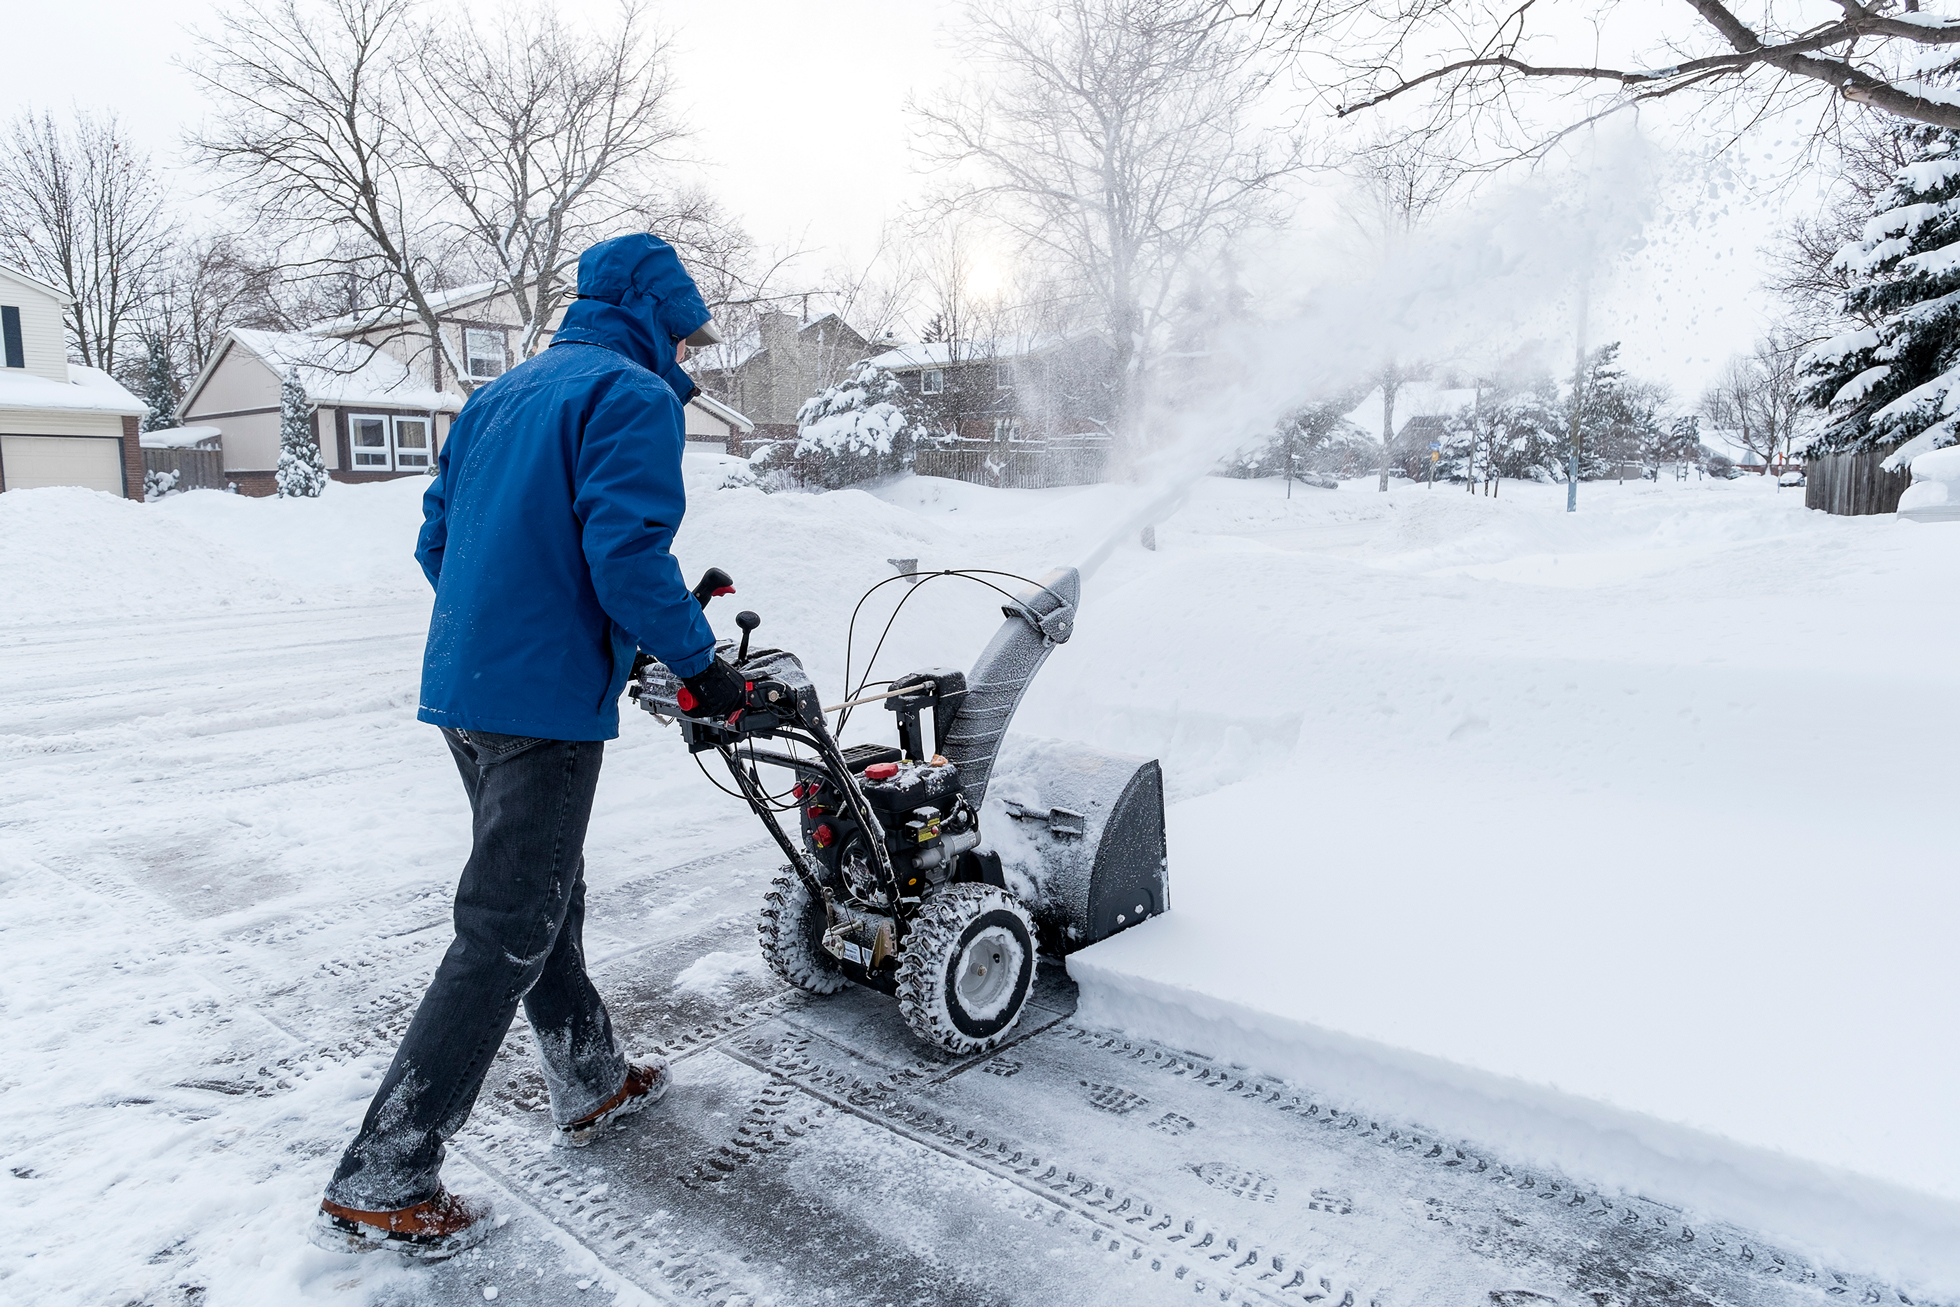 A man in a blue coat using a snow blower in a neighborhood